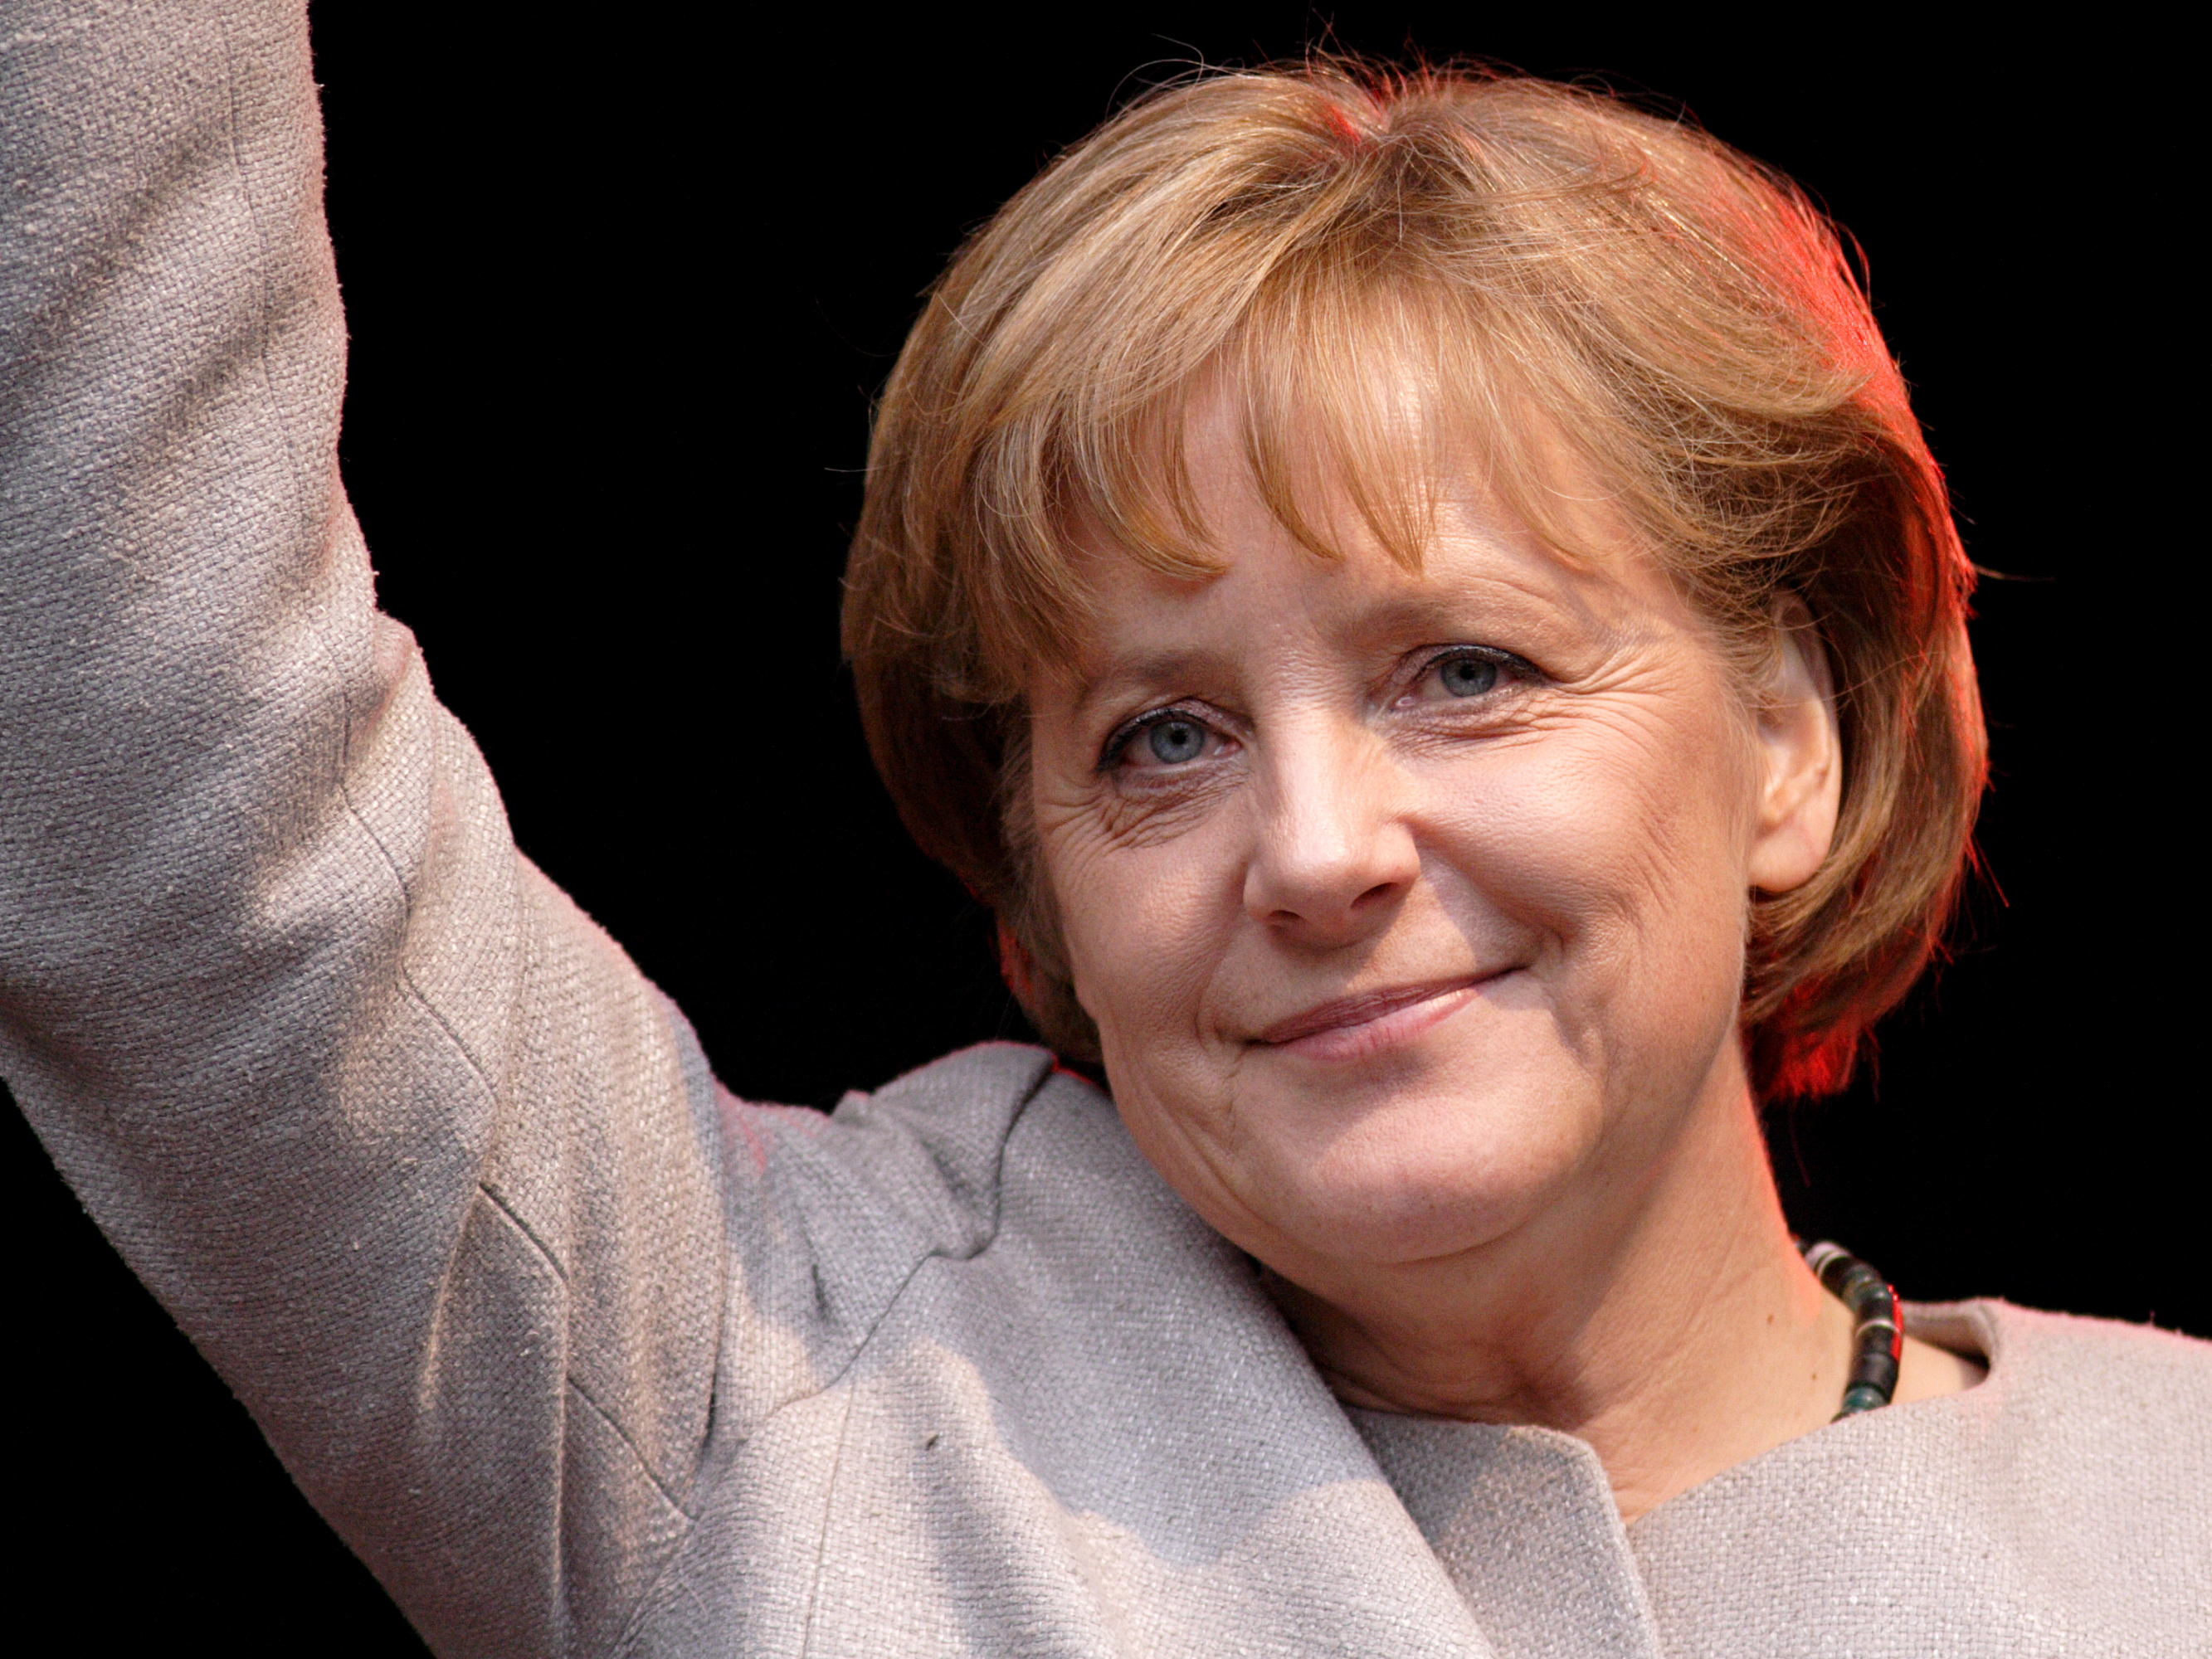 Chancellor Angela Merkel has done next to nothing to reverse the policy that has permitted so many refugees to descend on the German nation. (image from Wikipedia)